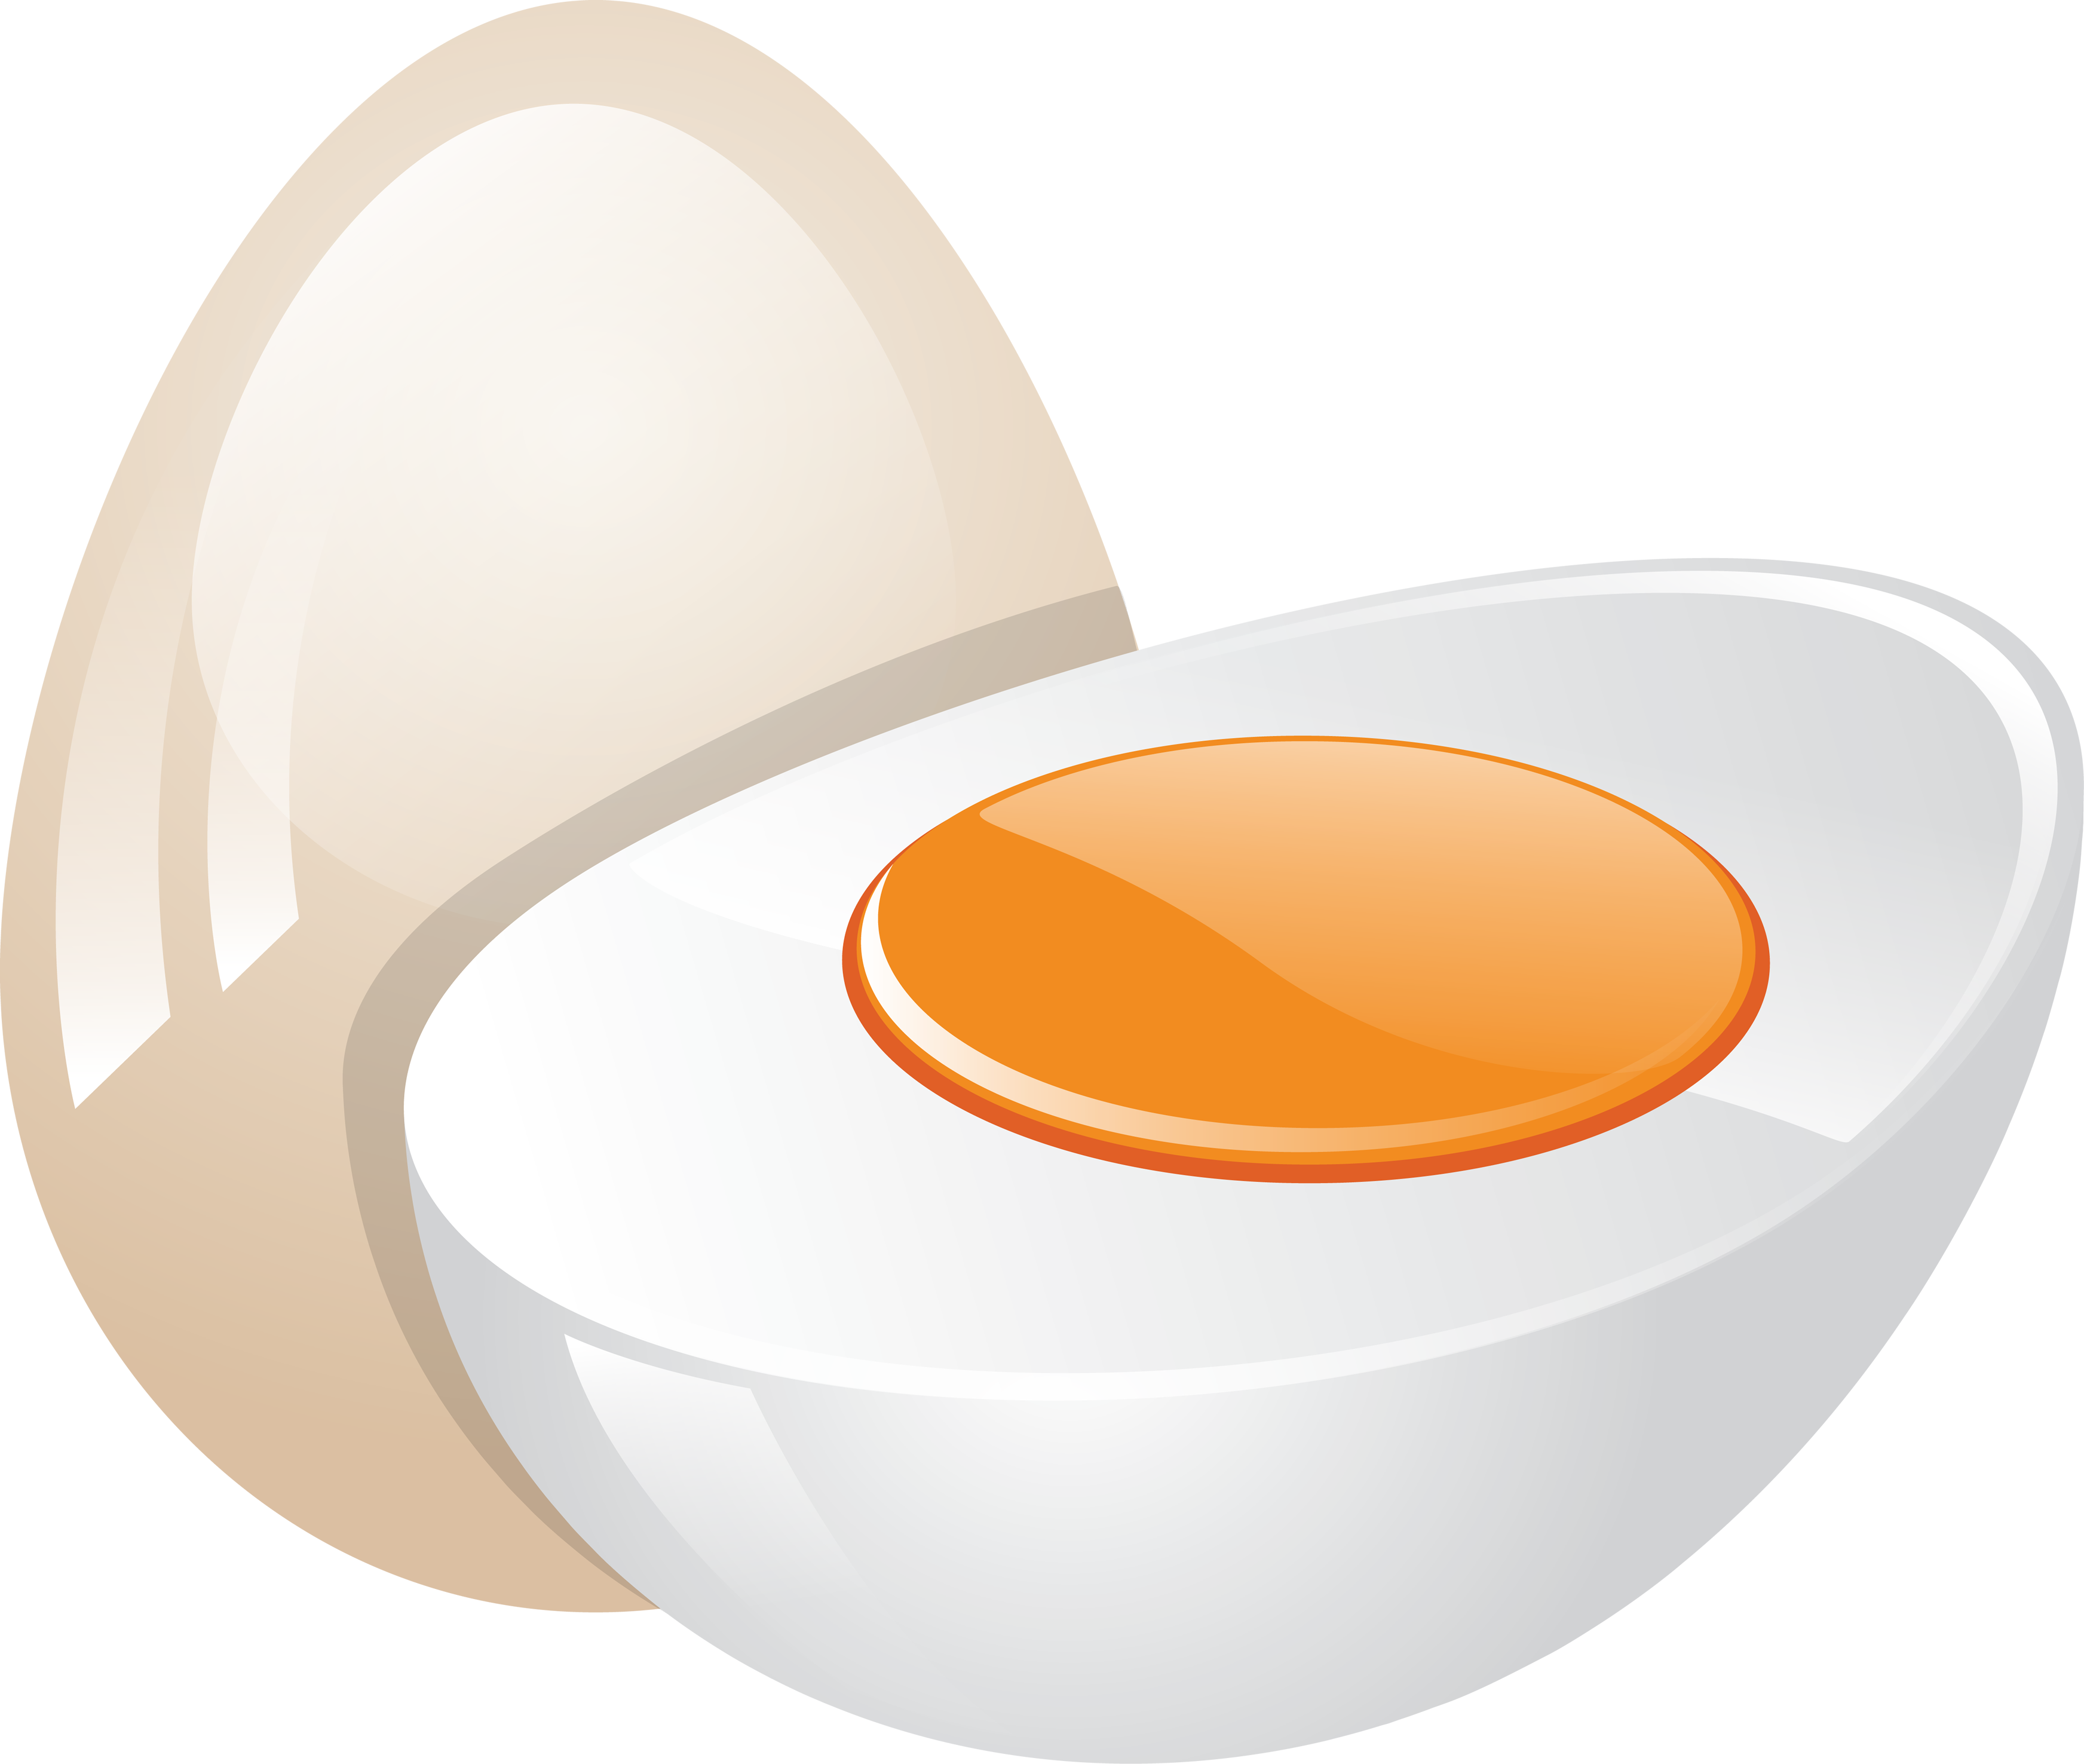 Png image purepng free. Eggs clipart egg whites